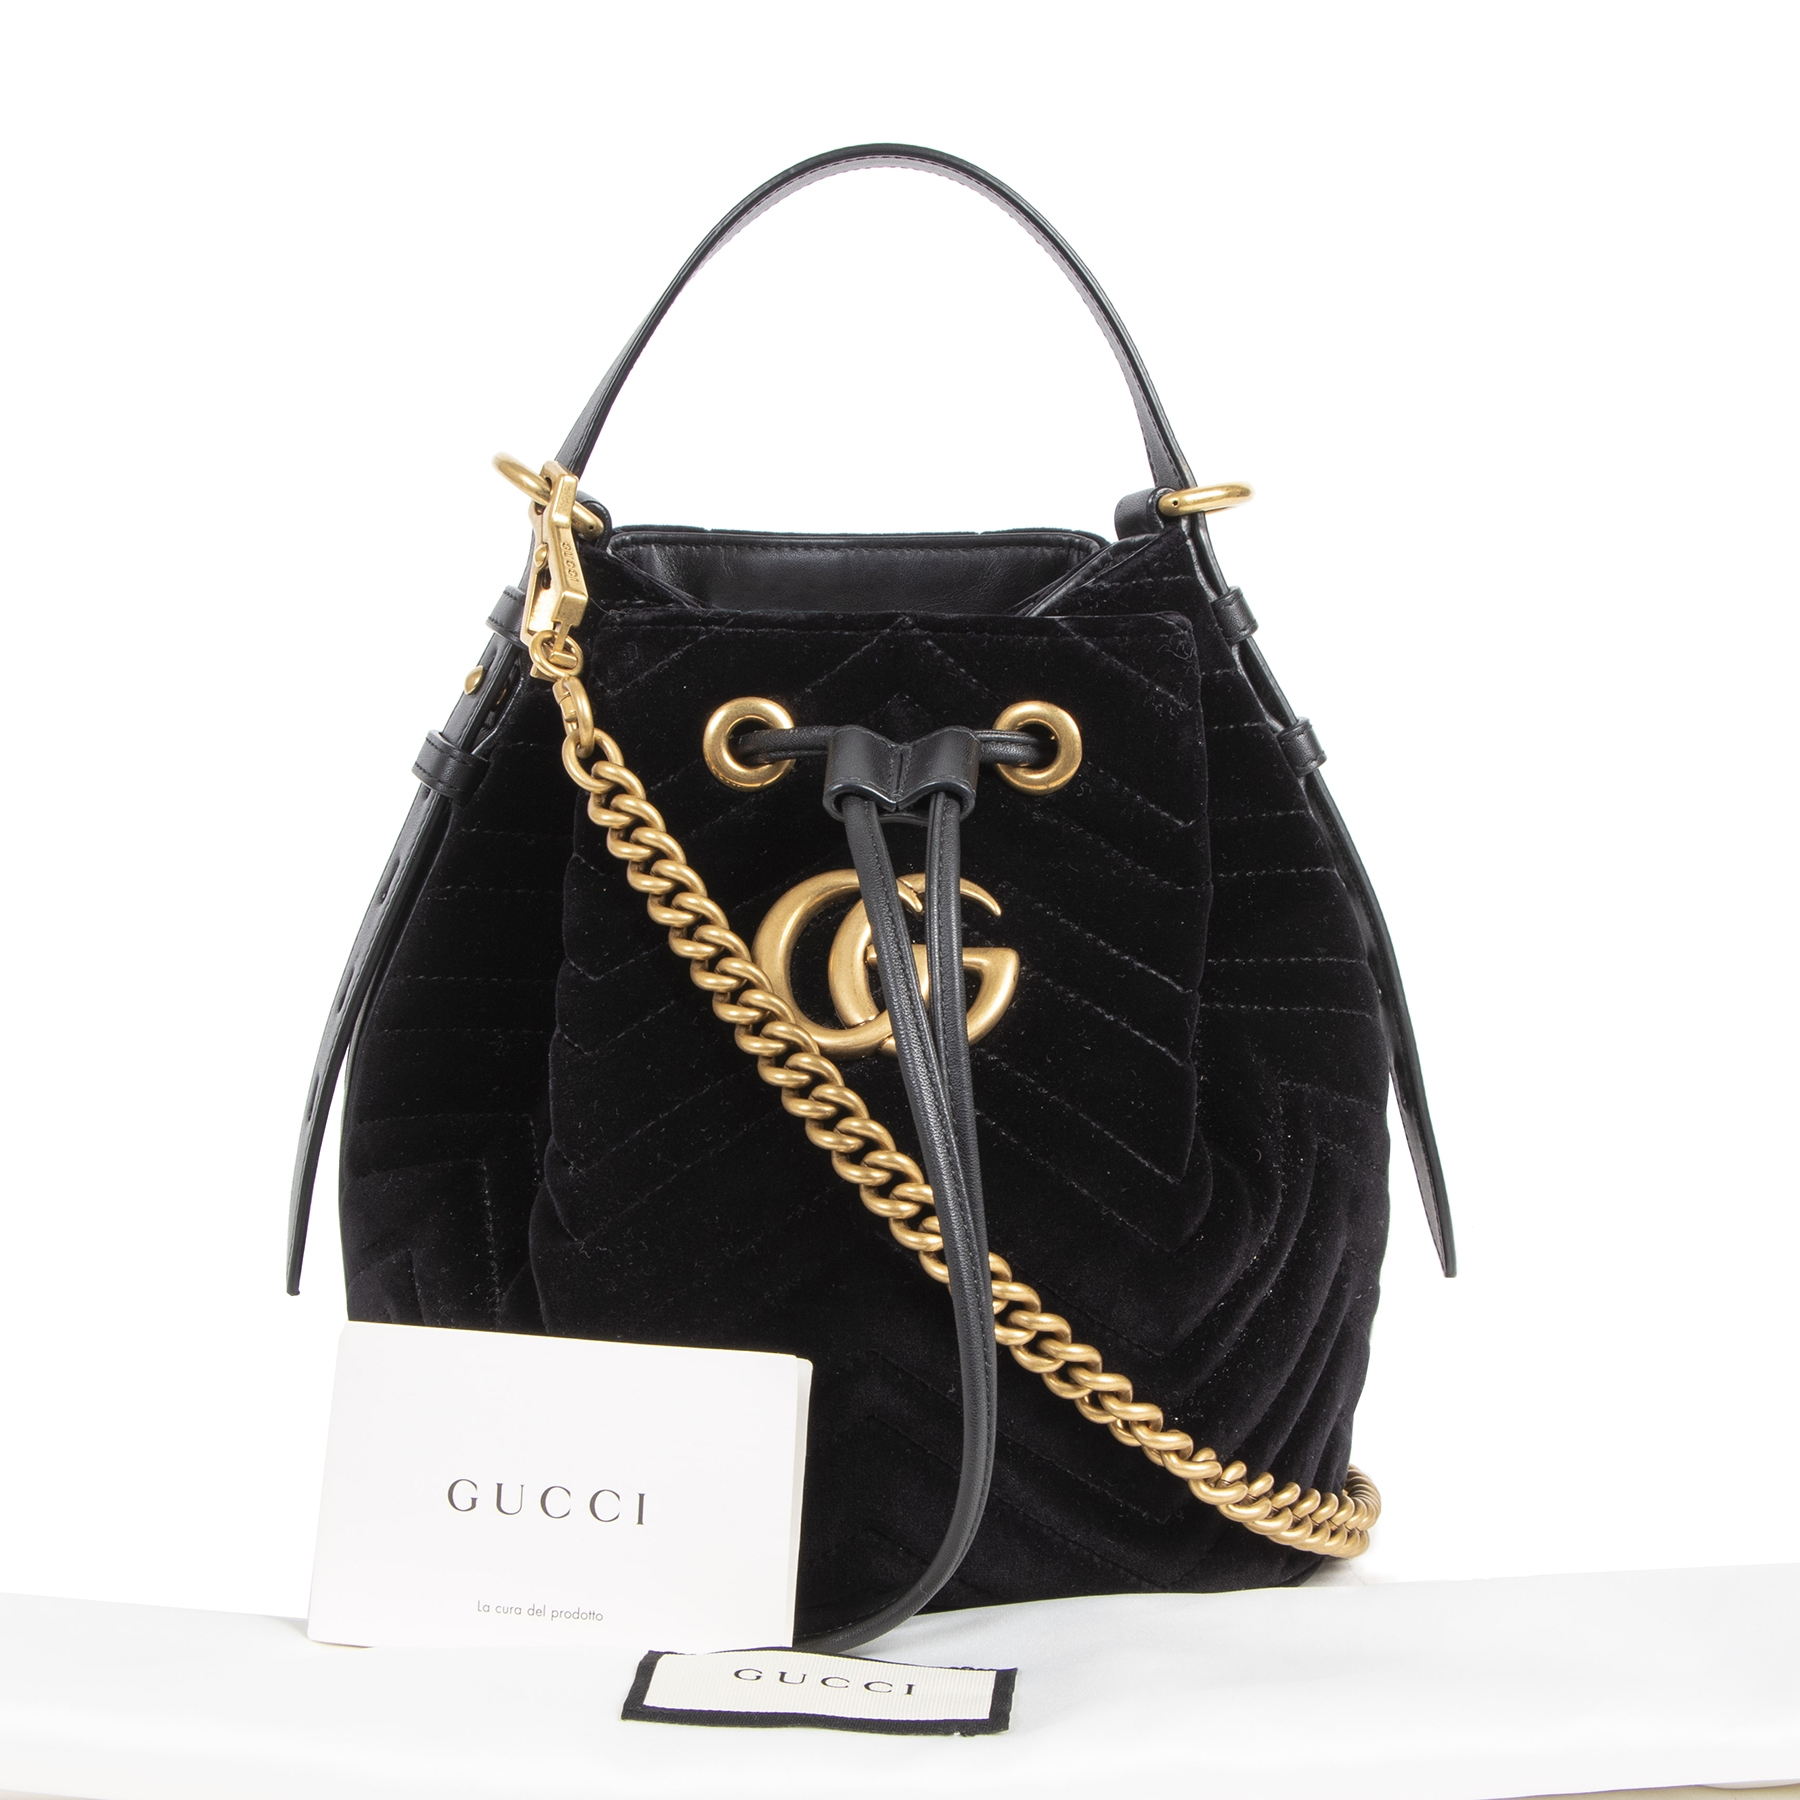 Authentieke tweedehands vintage Gucci Black Marmont Suede GG Bucket Bag koop online webshop LabelLOV